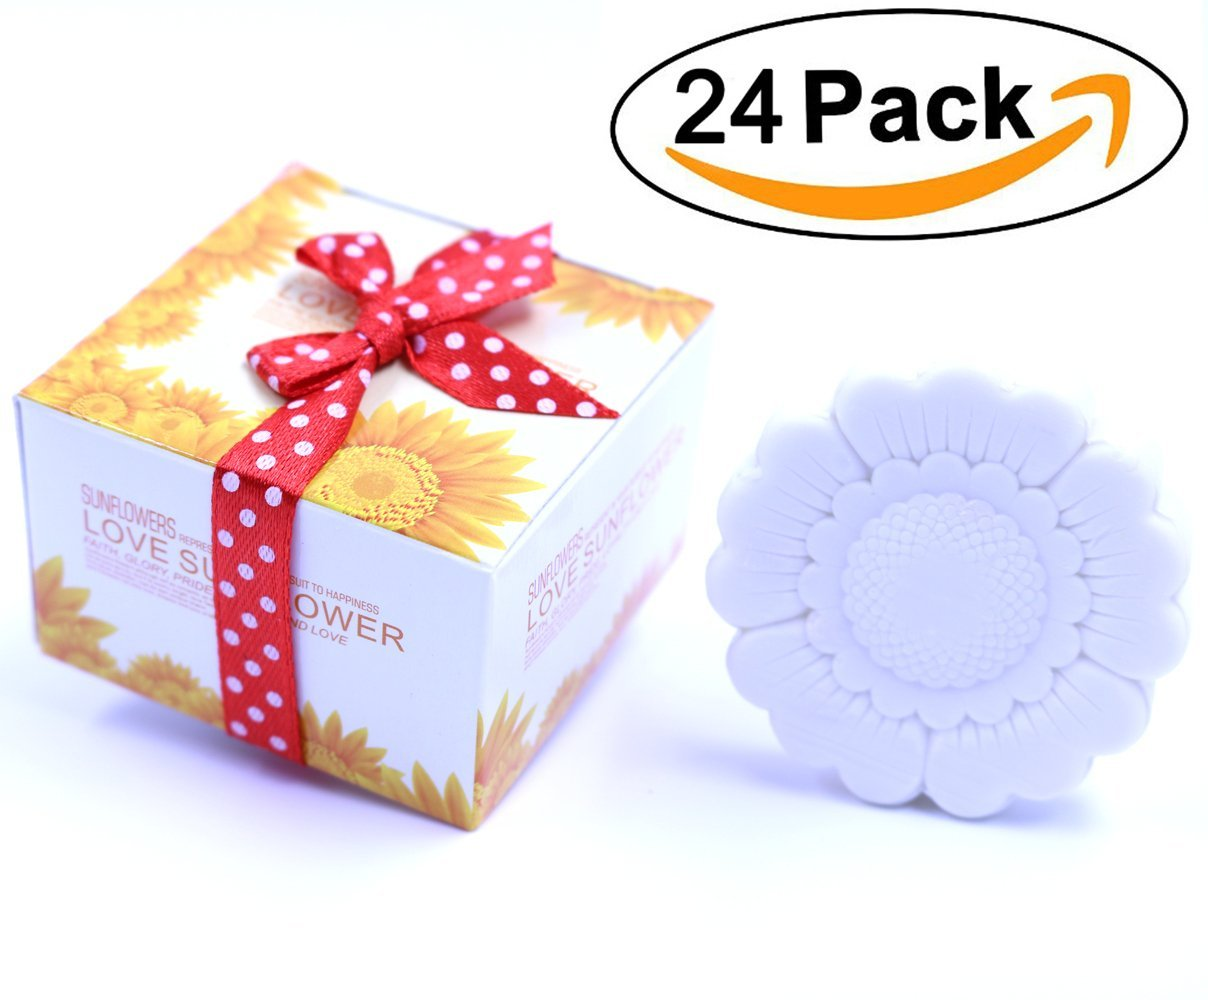 Parties Thanksgiving Gifts,Bridal Shower Gifts by Aistore Aistore Cute Mini 24 Pieces Cute Christmas Duck Style Handmade Scented Soap Guests Keepsake Gift for Wedding Gift Baby Shower Favors